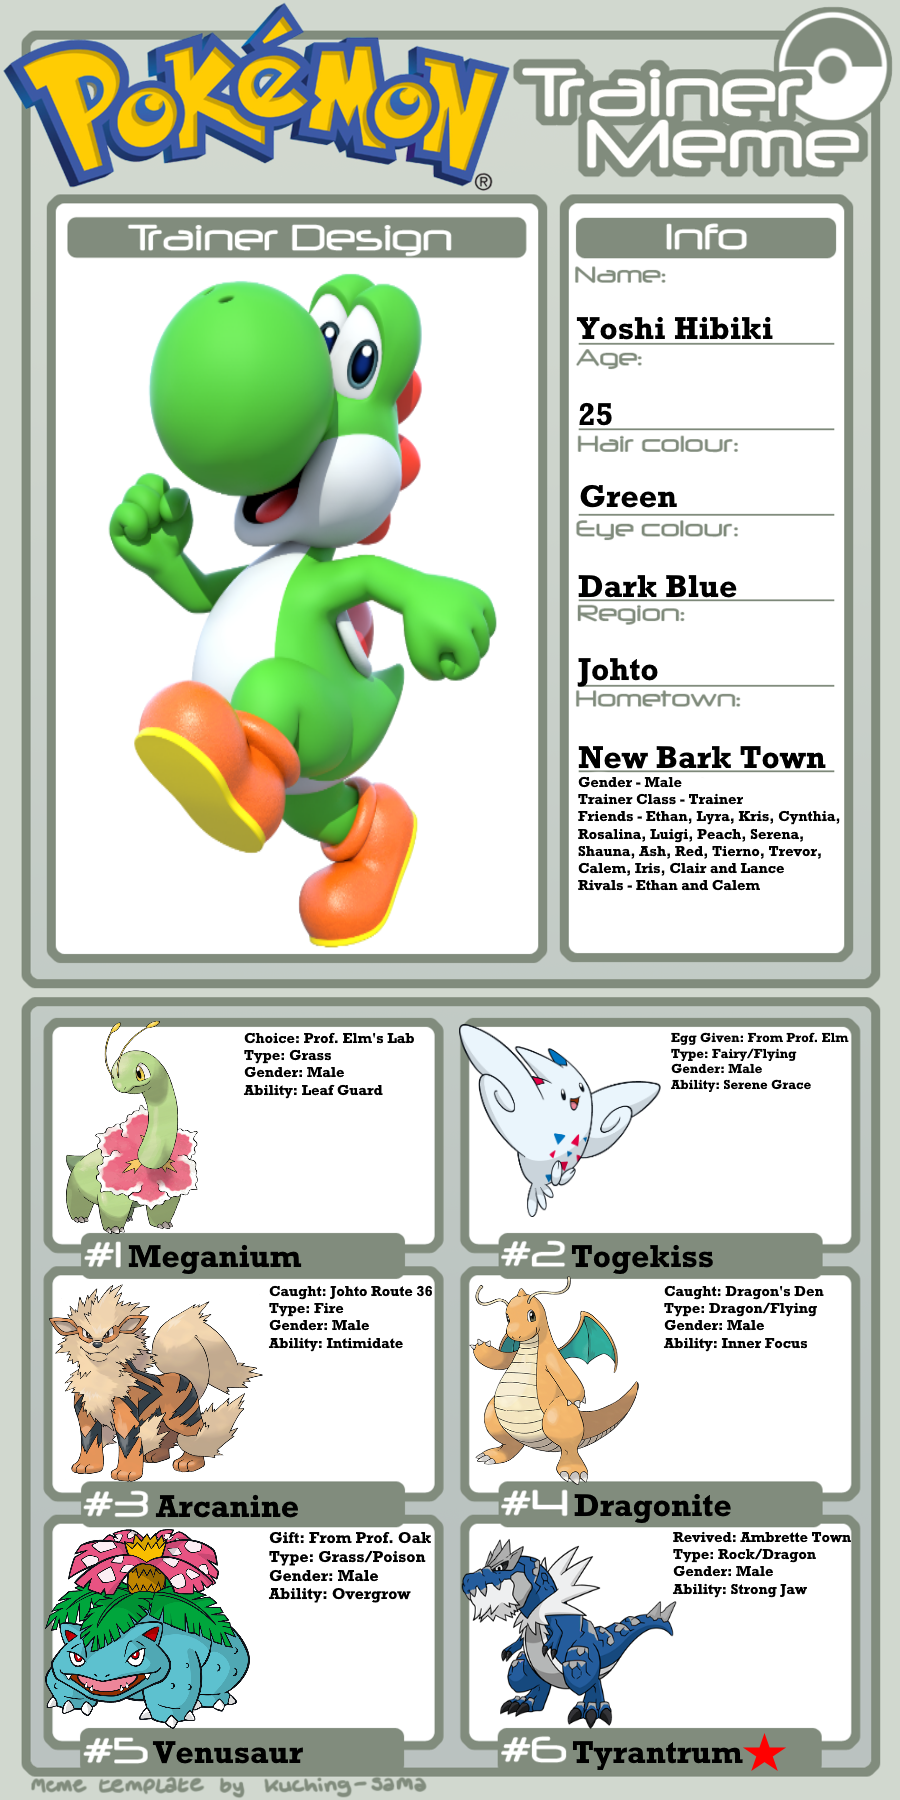 Silver Yoshi Images - Reverse Search